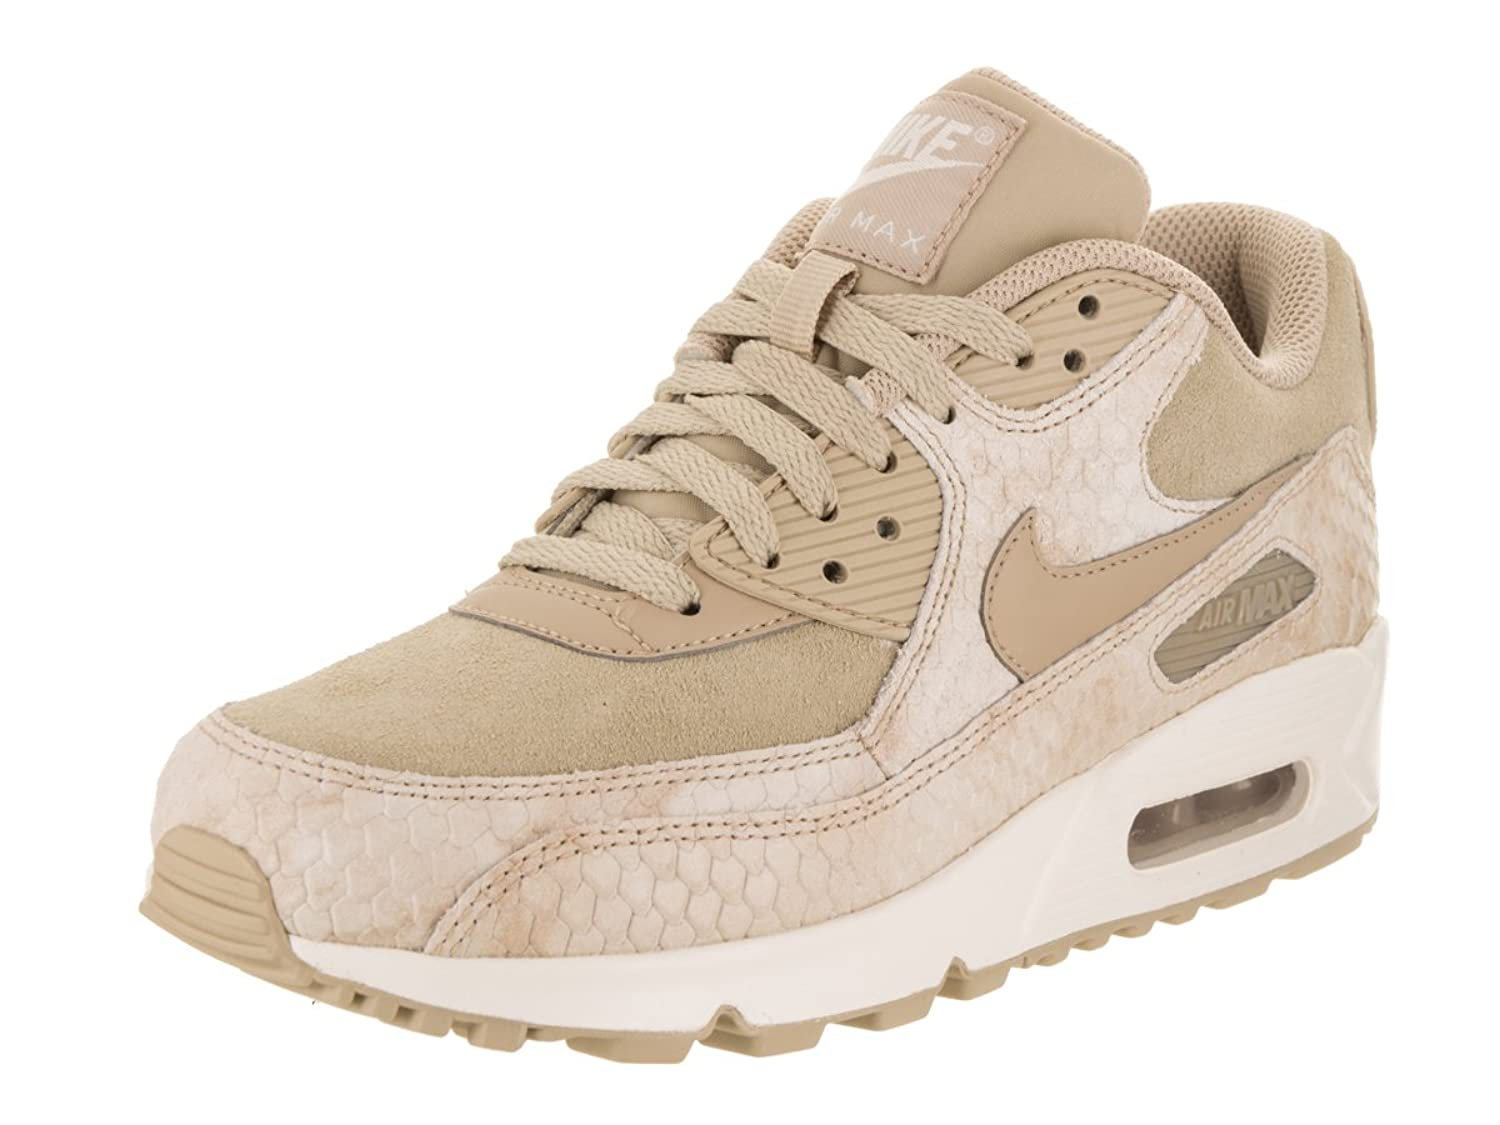 Nike Air Max 90 Donne Di Amazon Prime Uk BAkSw0t